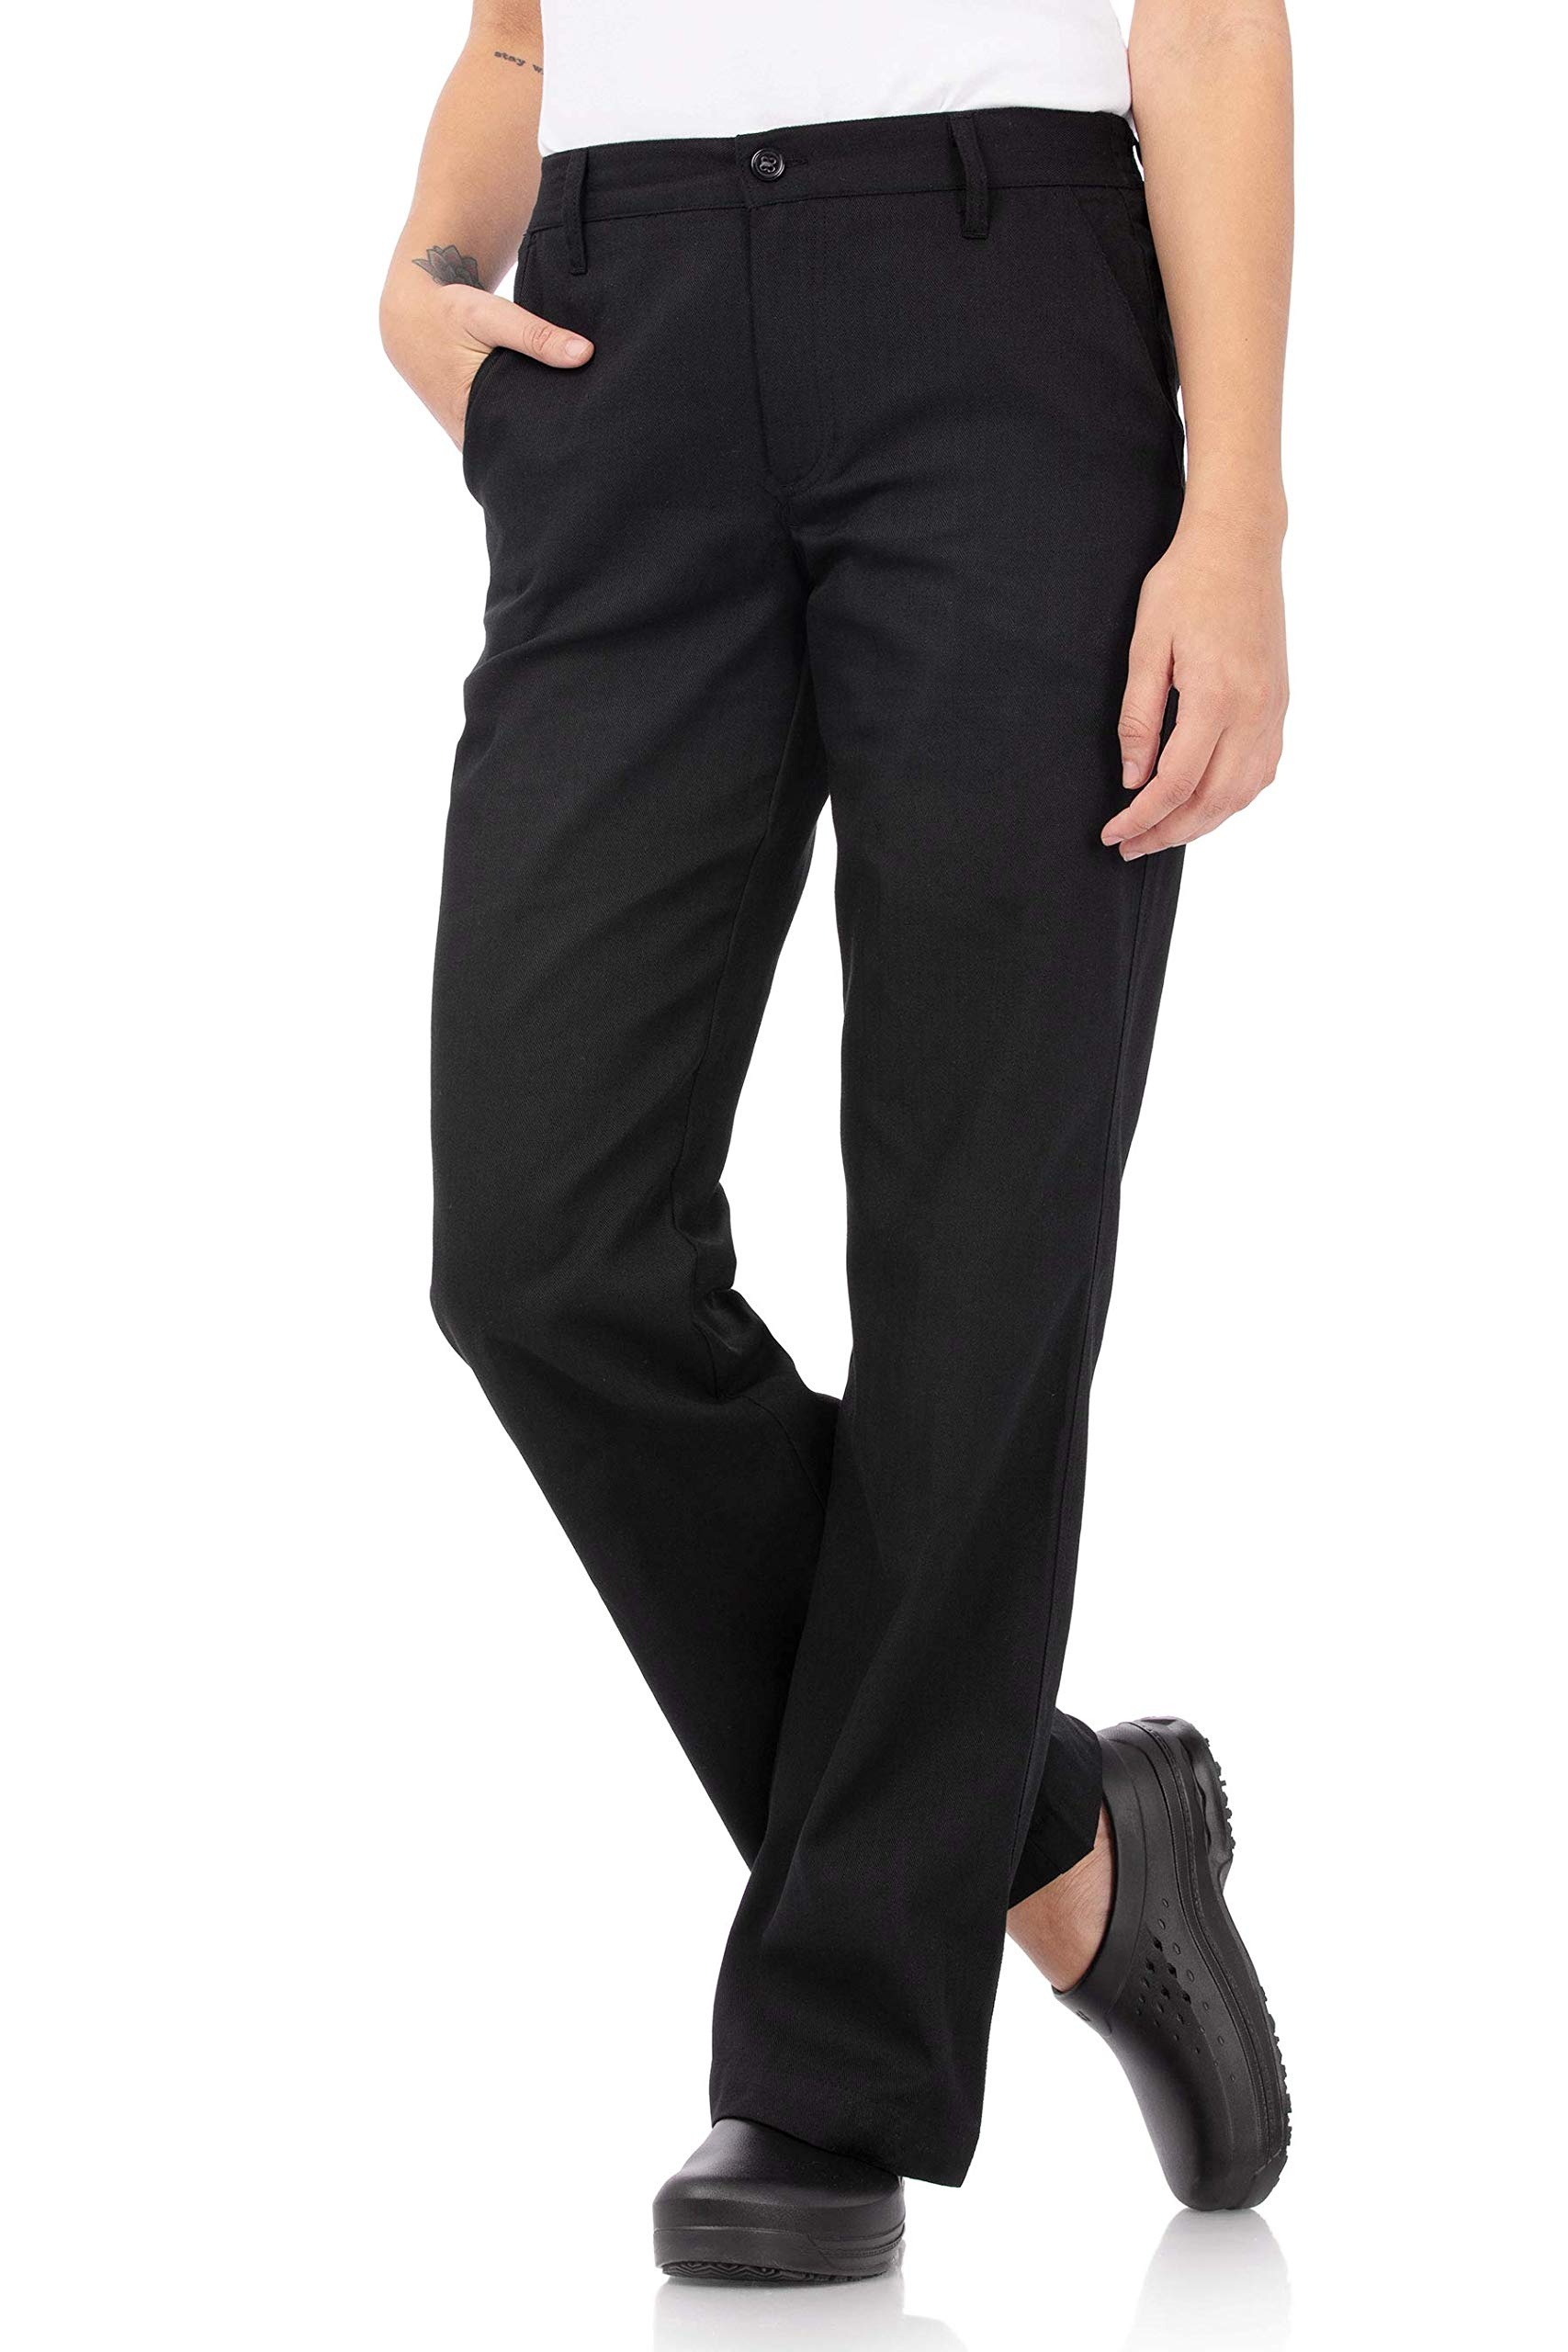 Chef Works Women's Professional Series Chef Pants